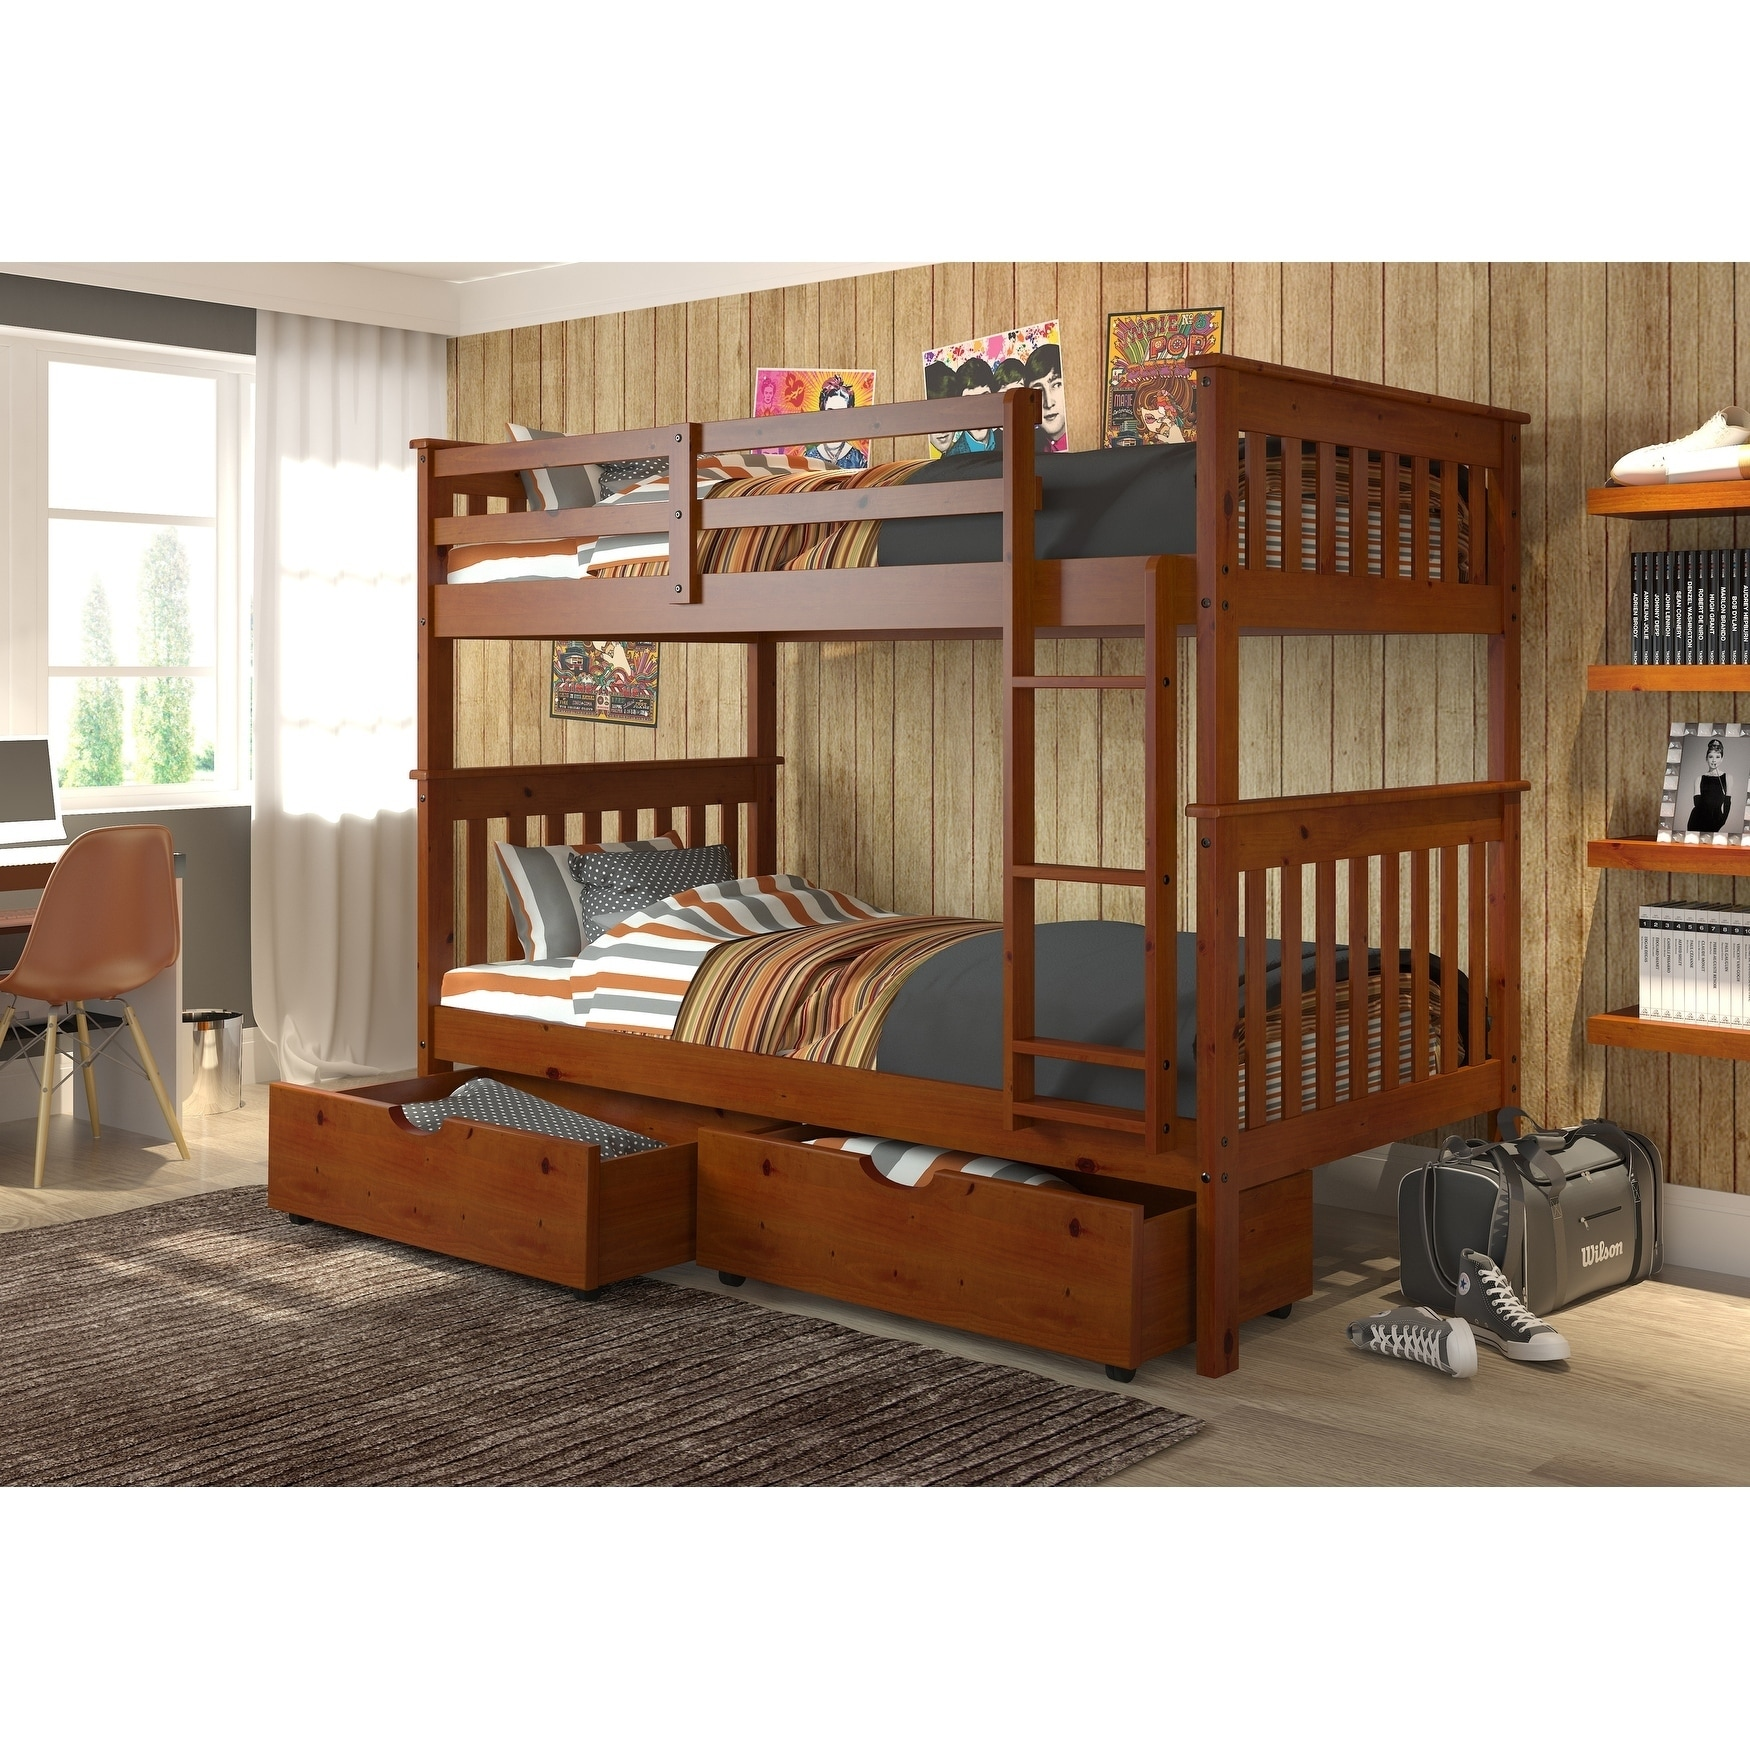 f51041f9b5 Shop Donco Kids Mission Twin over Twin Bunk Bed with Trundle or Drawers in  Light Espresso - On Sale - Free Shipping Today - Overstock - 21545926